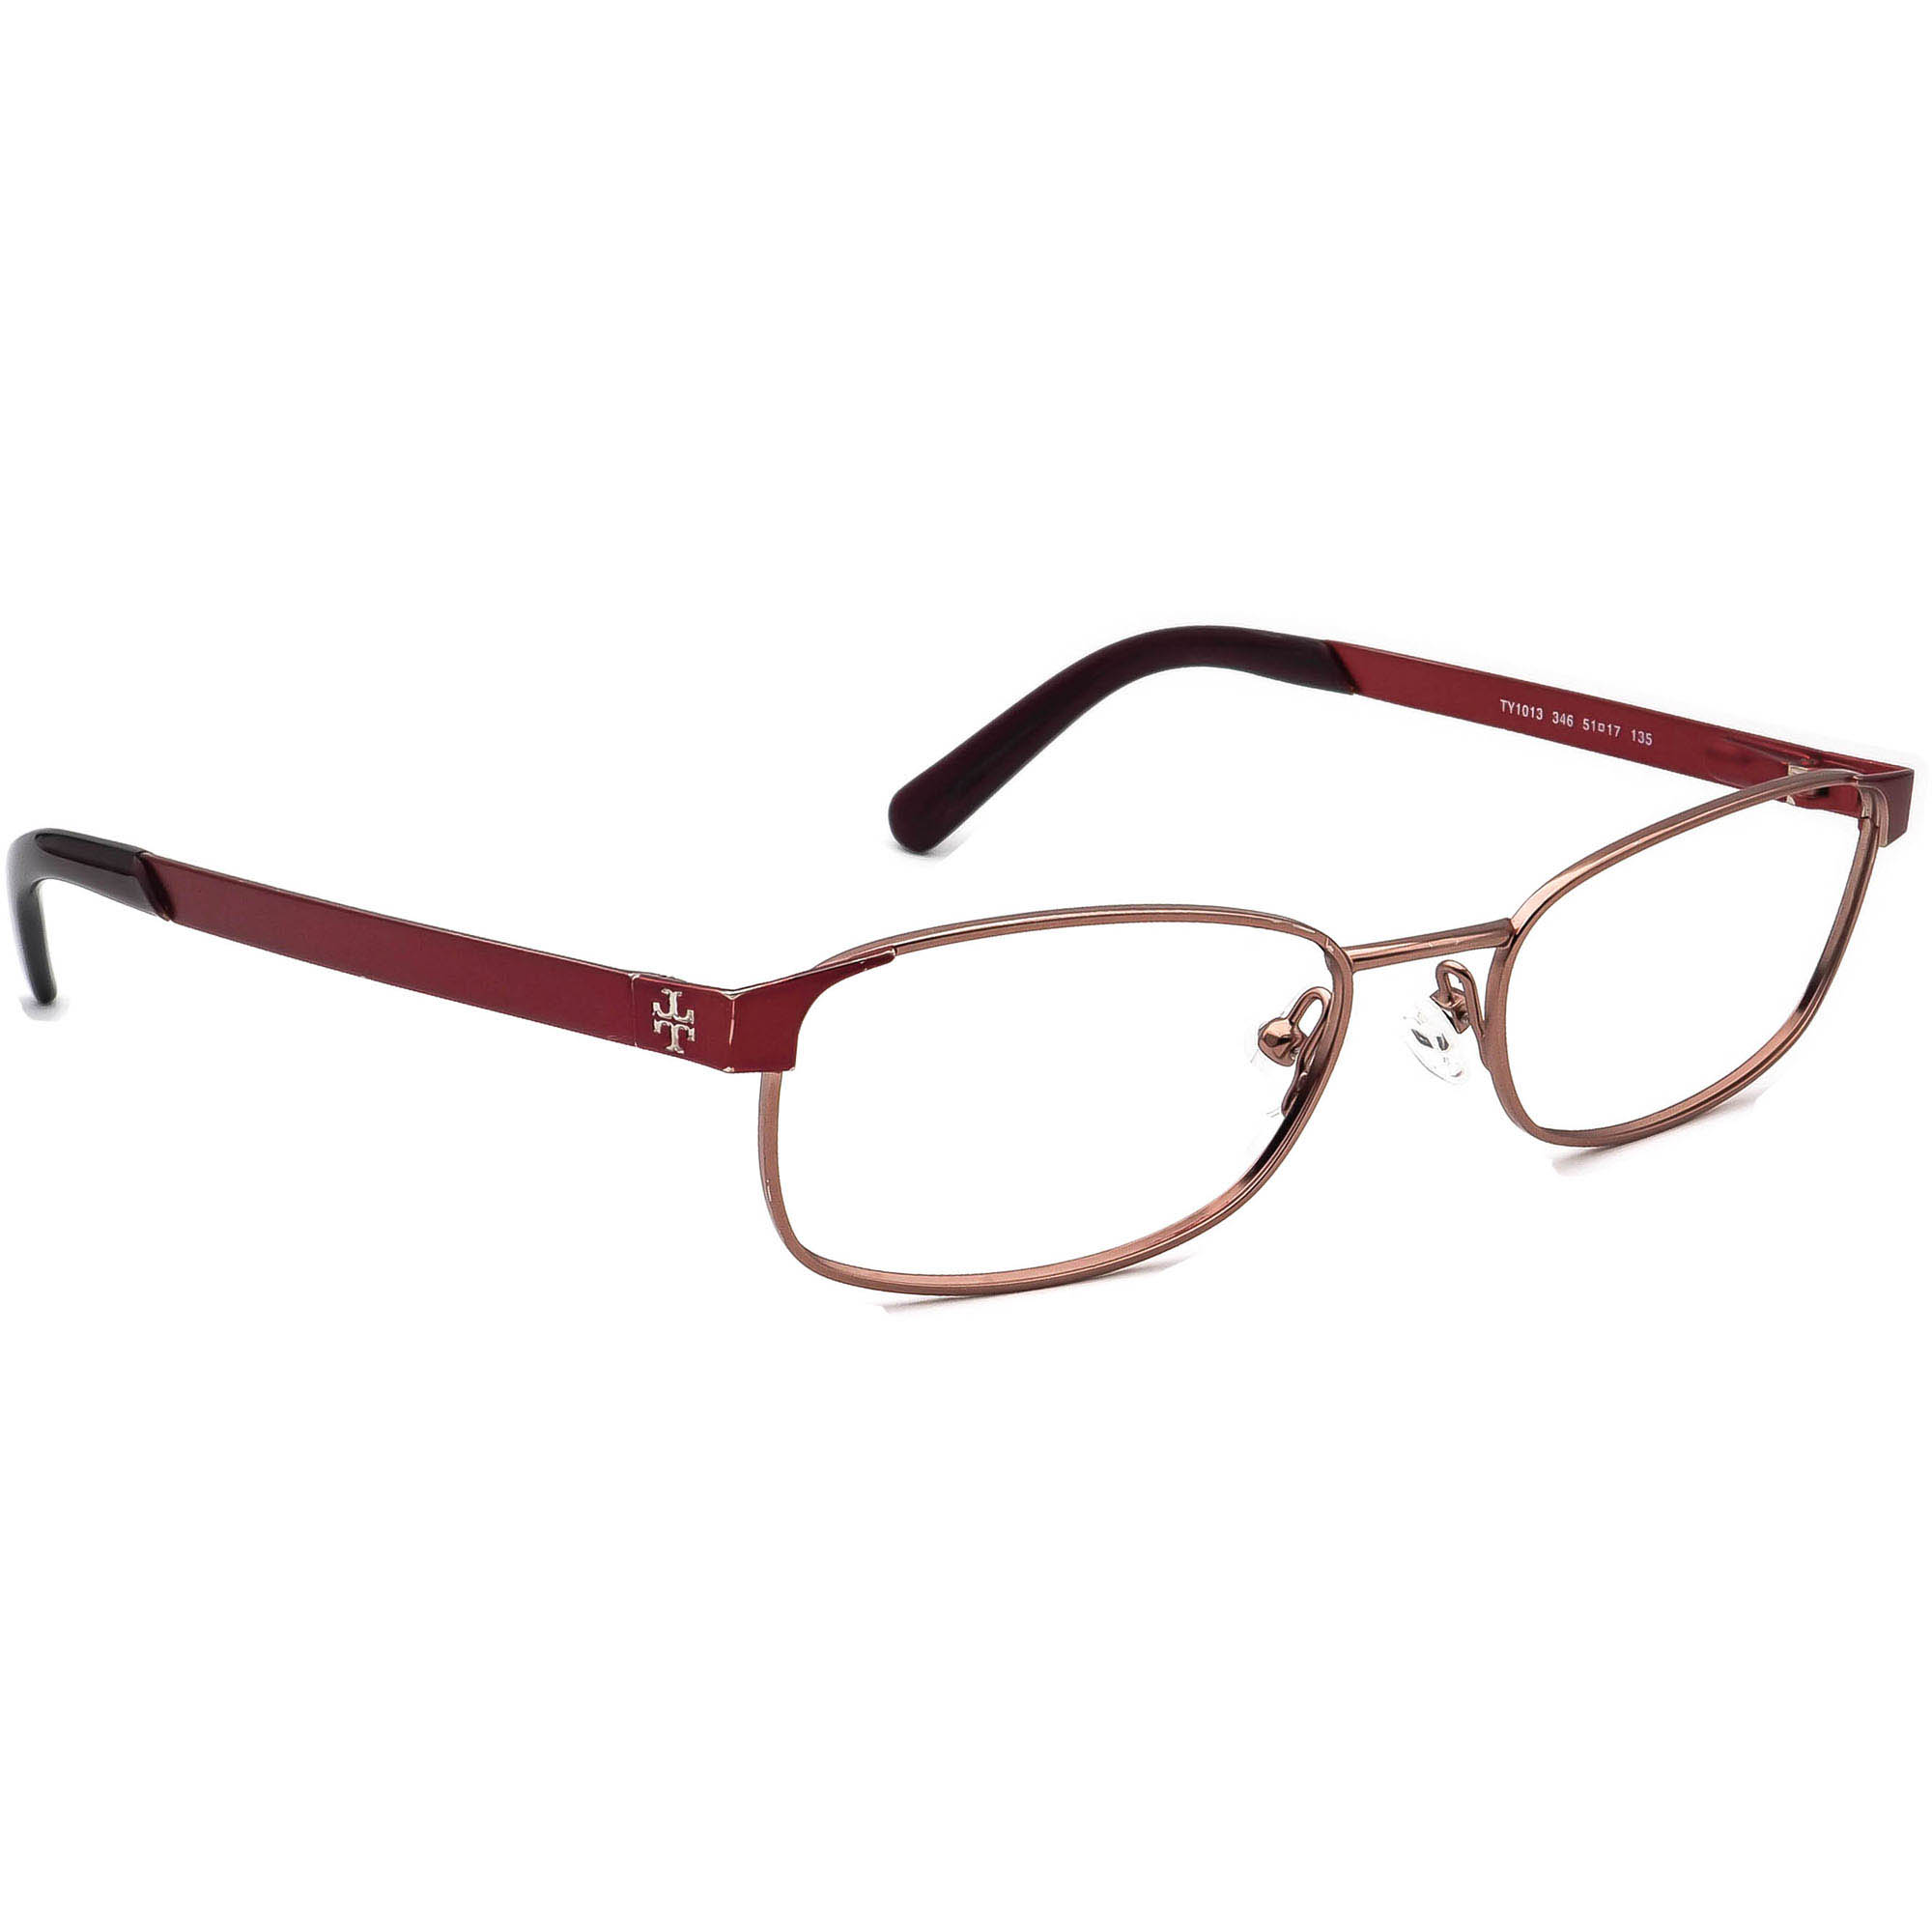 Tory Burch TY1013 346 Eyeglasses